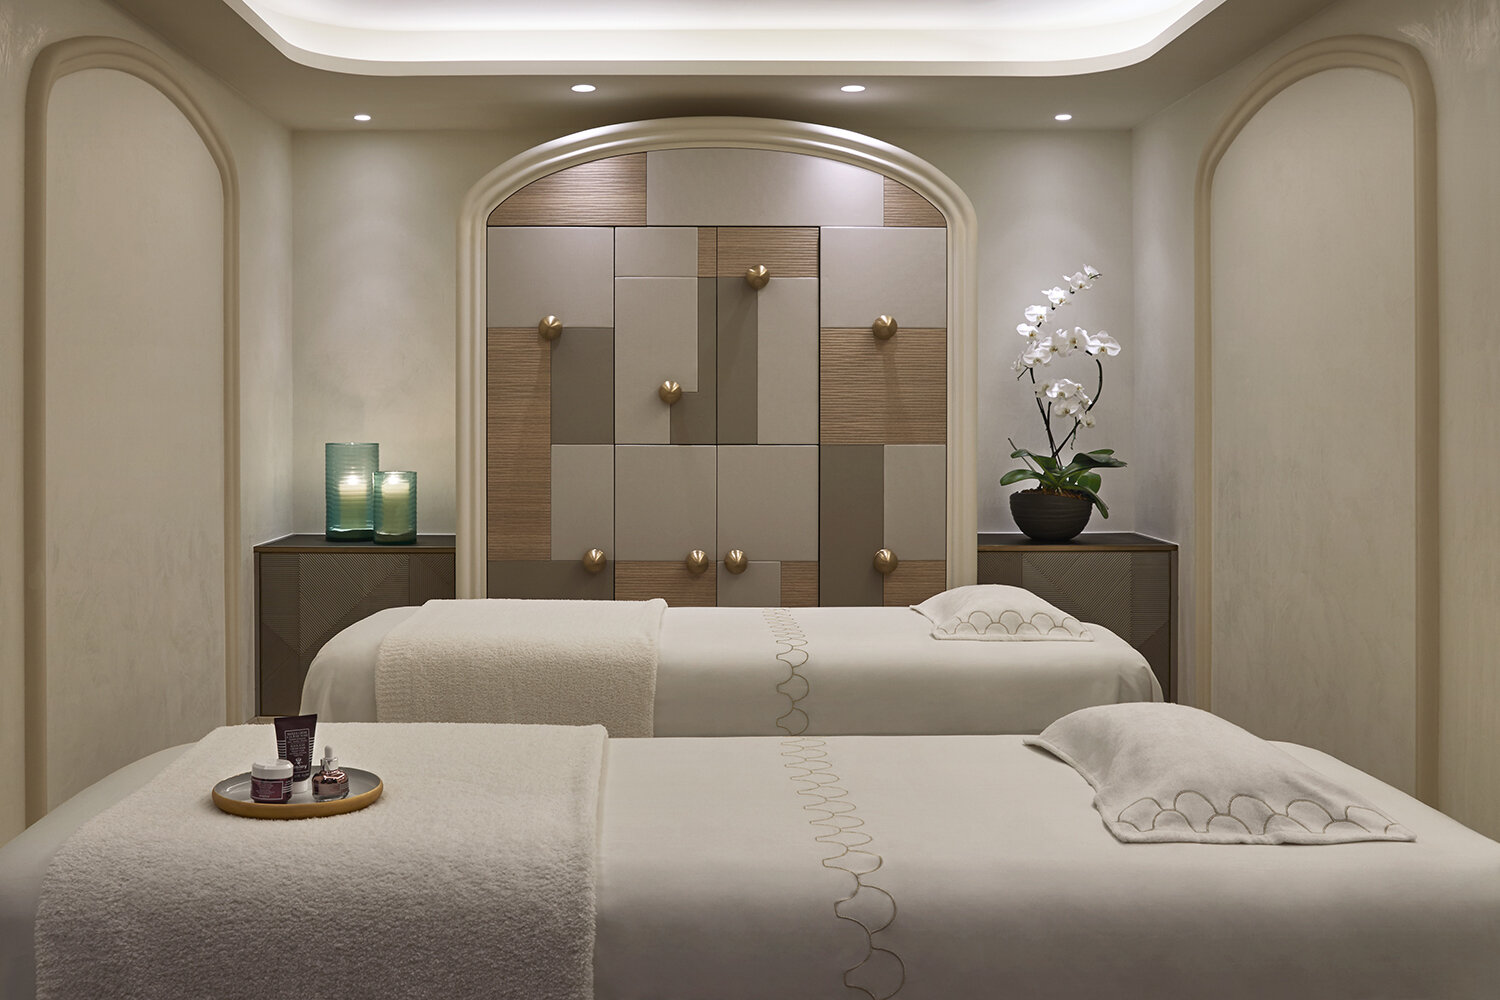 Sisley Paris Partners With Hôtel De Crillon A Rosewood Hotel To Offer Bespoke Wellness Experiences Spa And Beauty Today